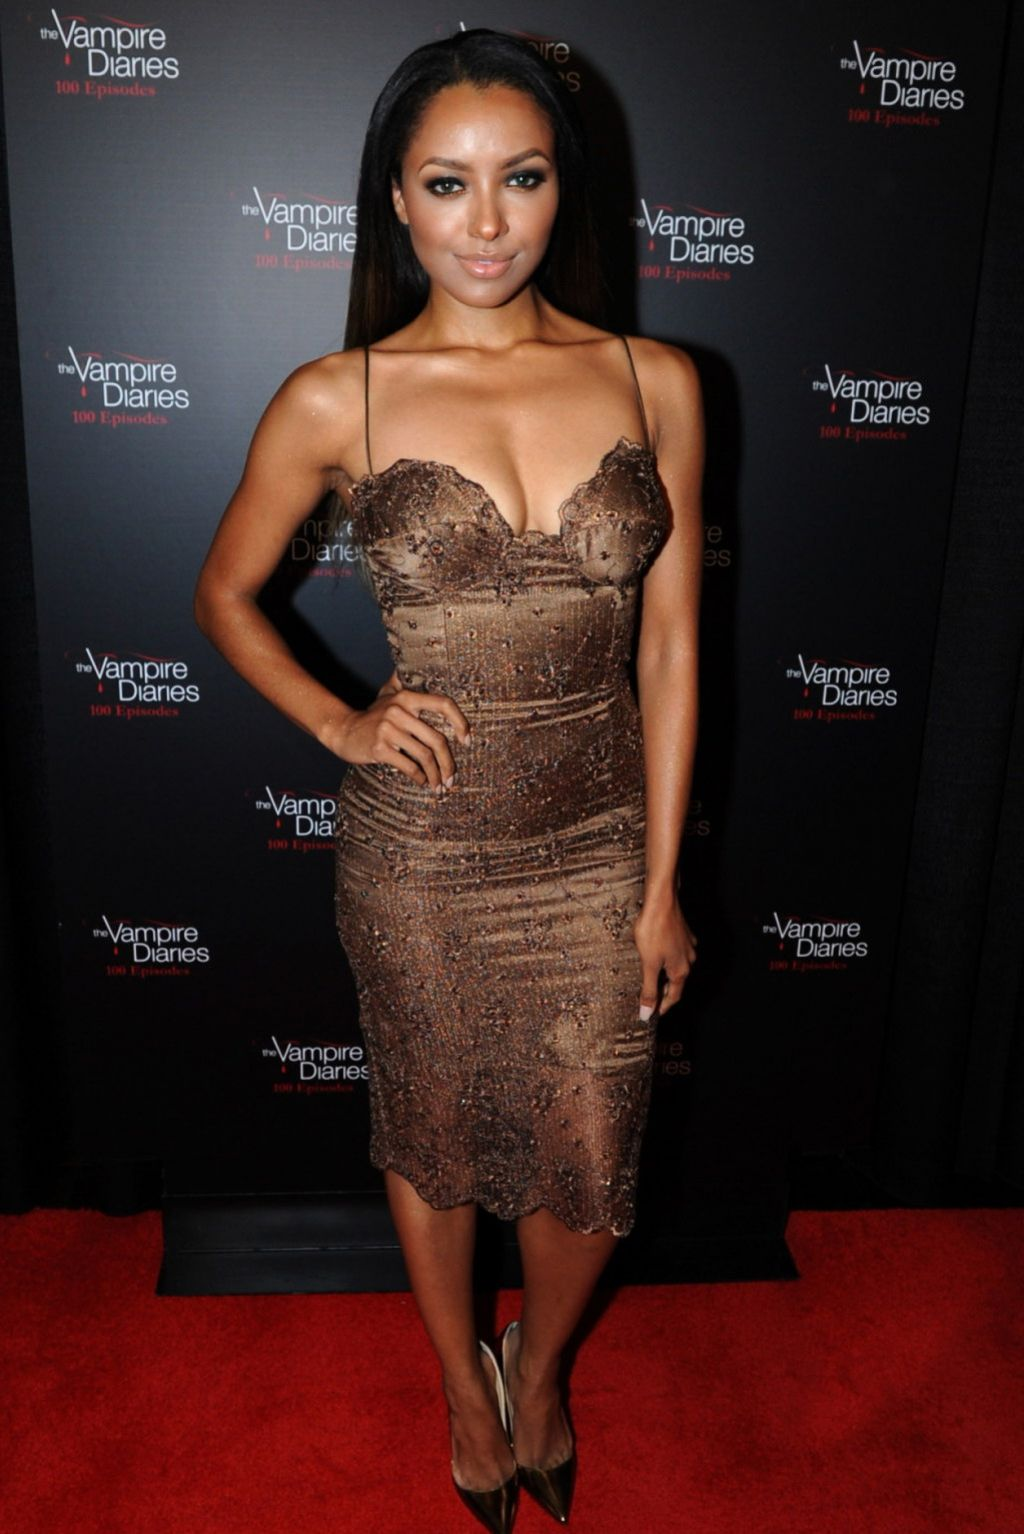 Kat Graham on Red Carpet - The Vampire Diaries 100th Episode Celebration